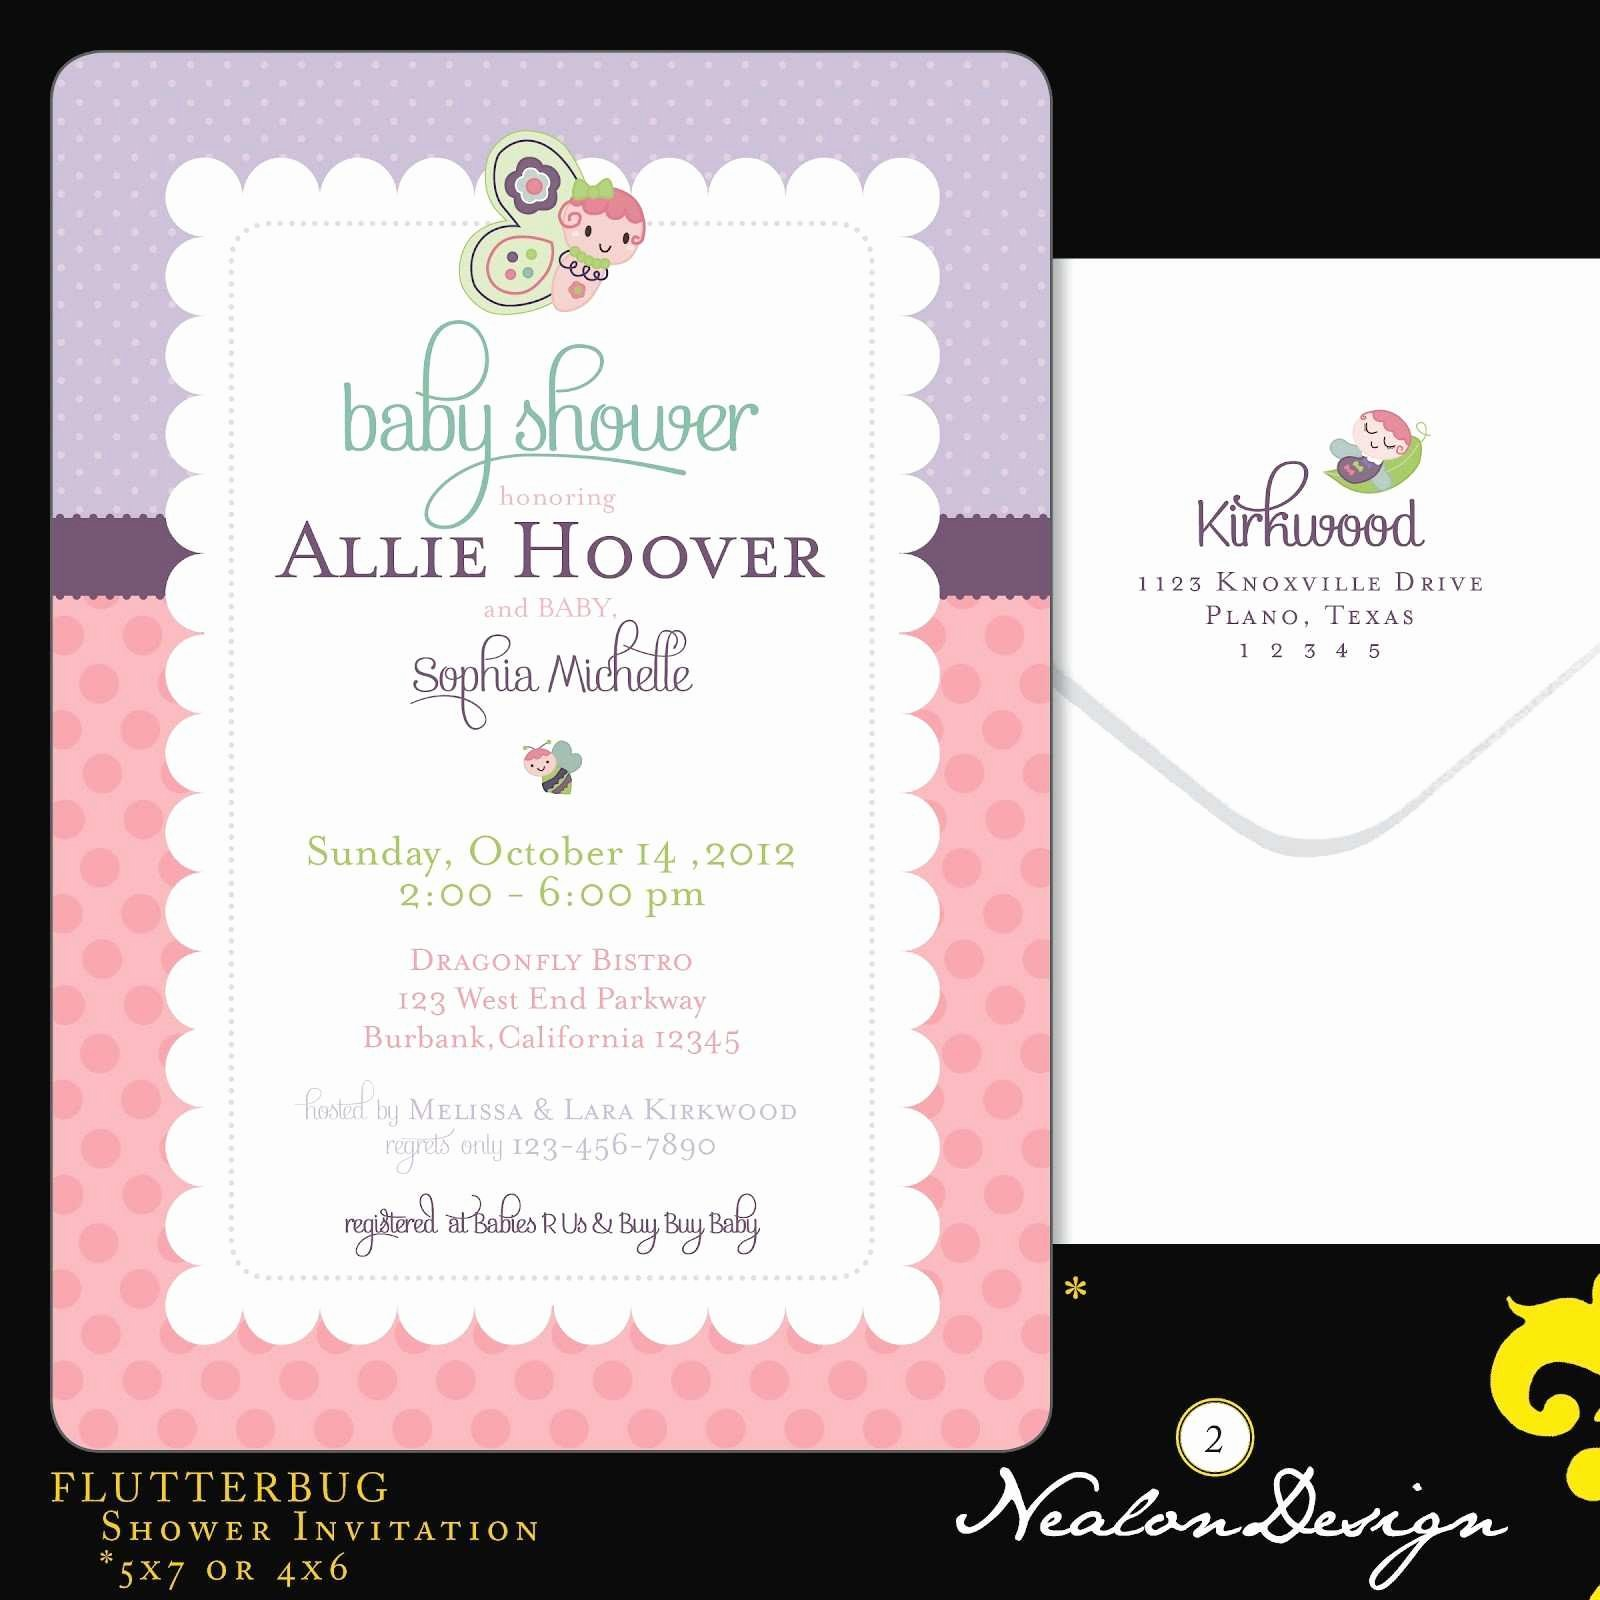 Bridal Shower Invitations Template Lovely Beautiful Bridal Shower Invitation Templates for Microsoft